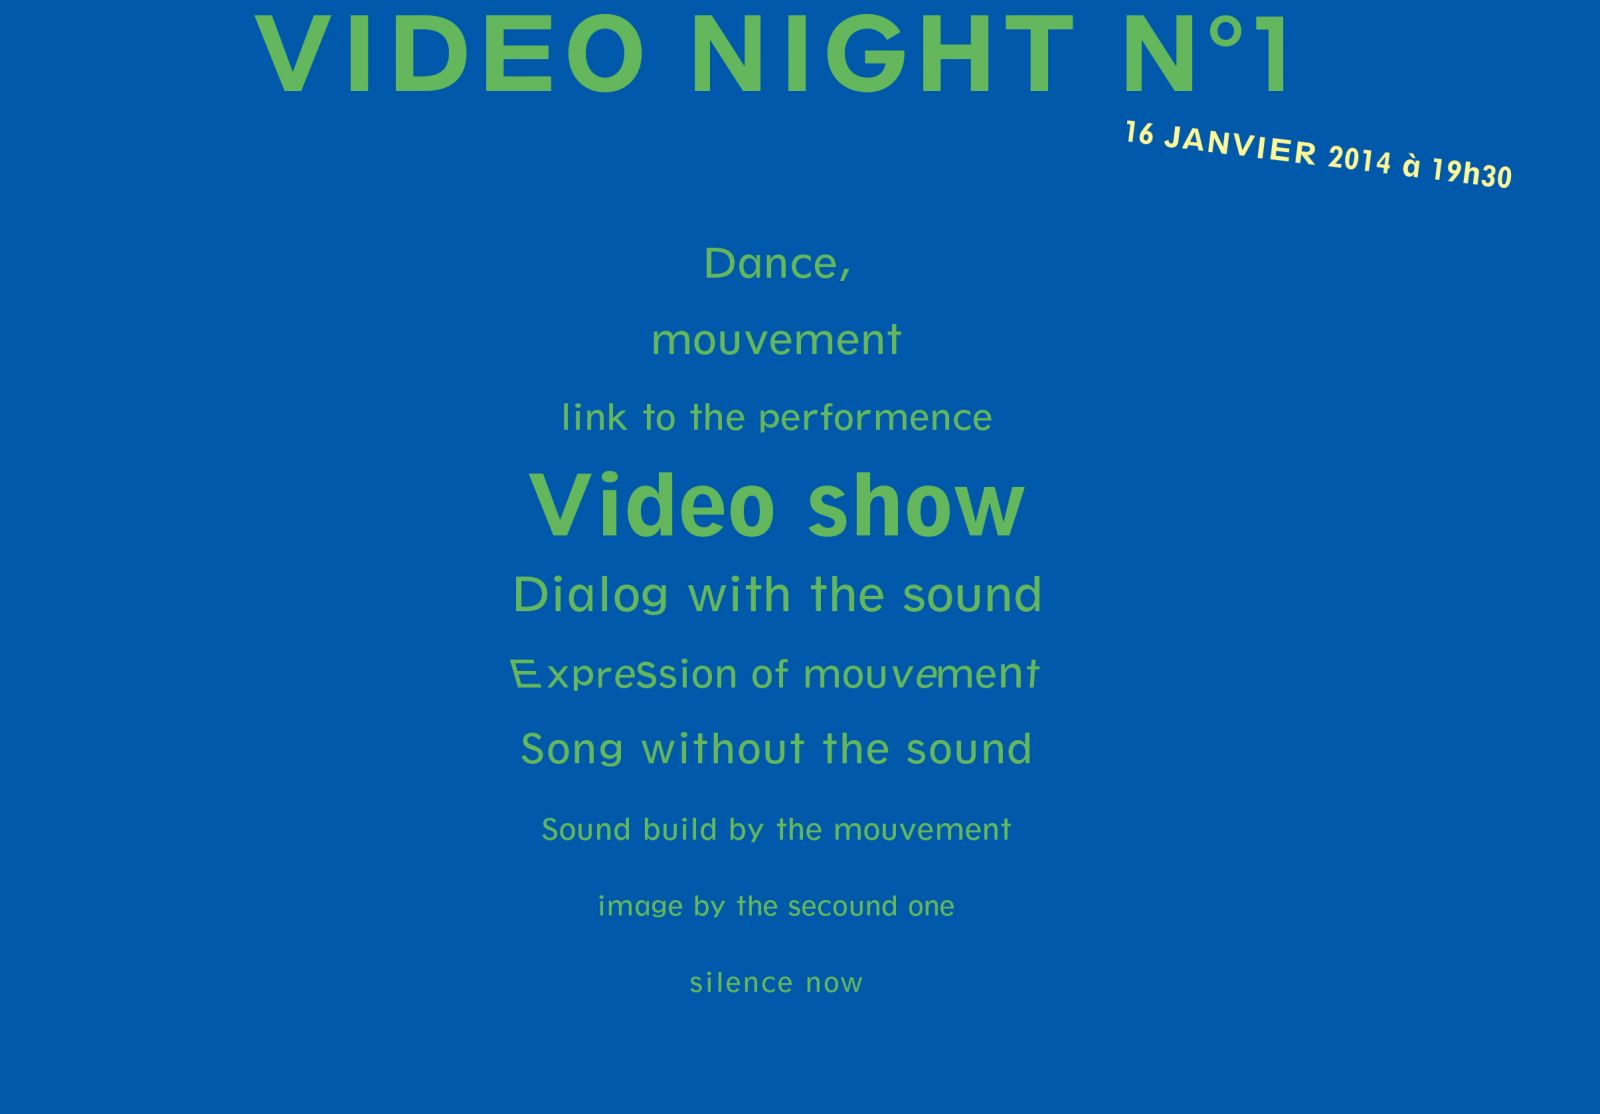 video-night-1-d9501b62840483d74594e00be6b5b0a1